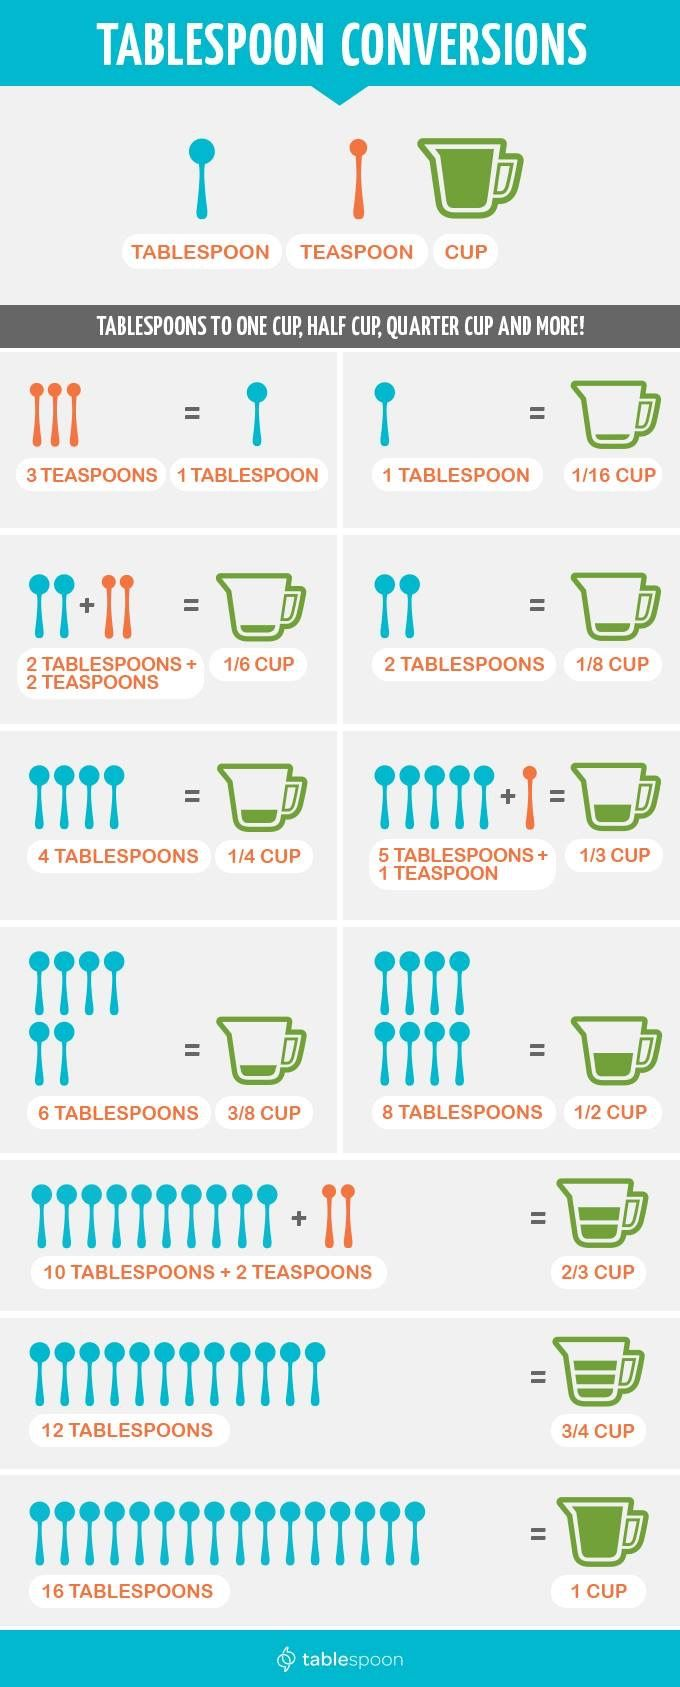 Best 25 baking conversion ideas on pinterest baking conversion measurement conversions tablespoon teaspoon and cups wet and dry ingredients cooking nvjuhfo Images